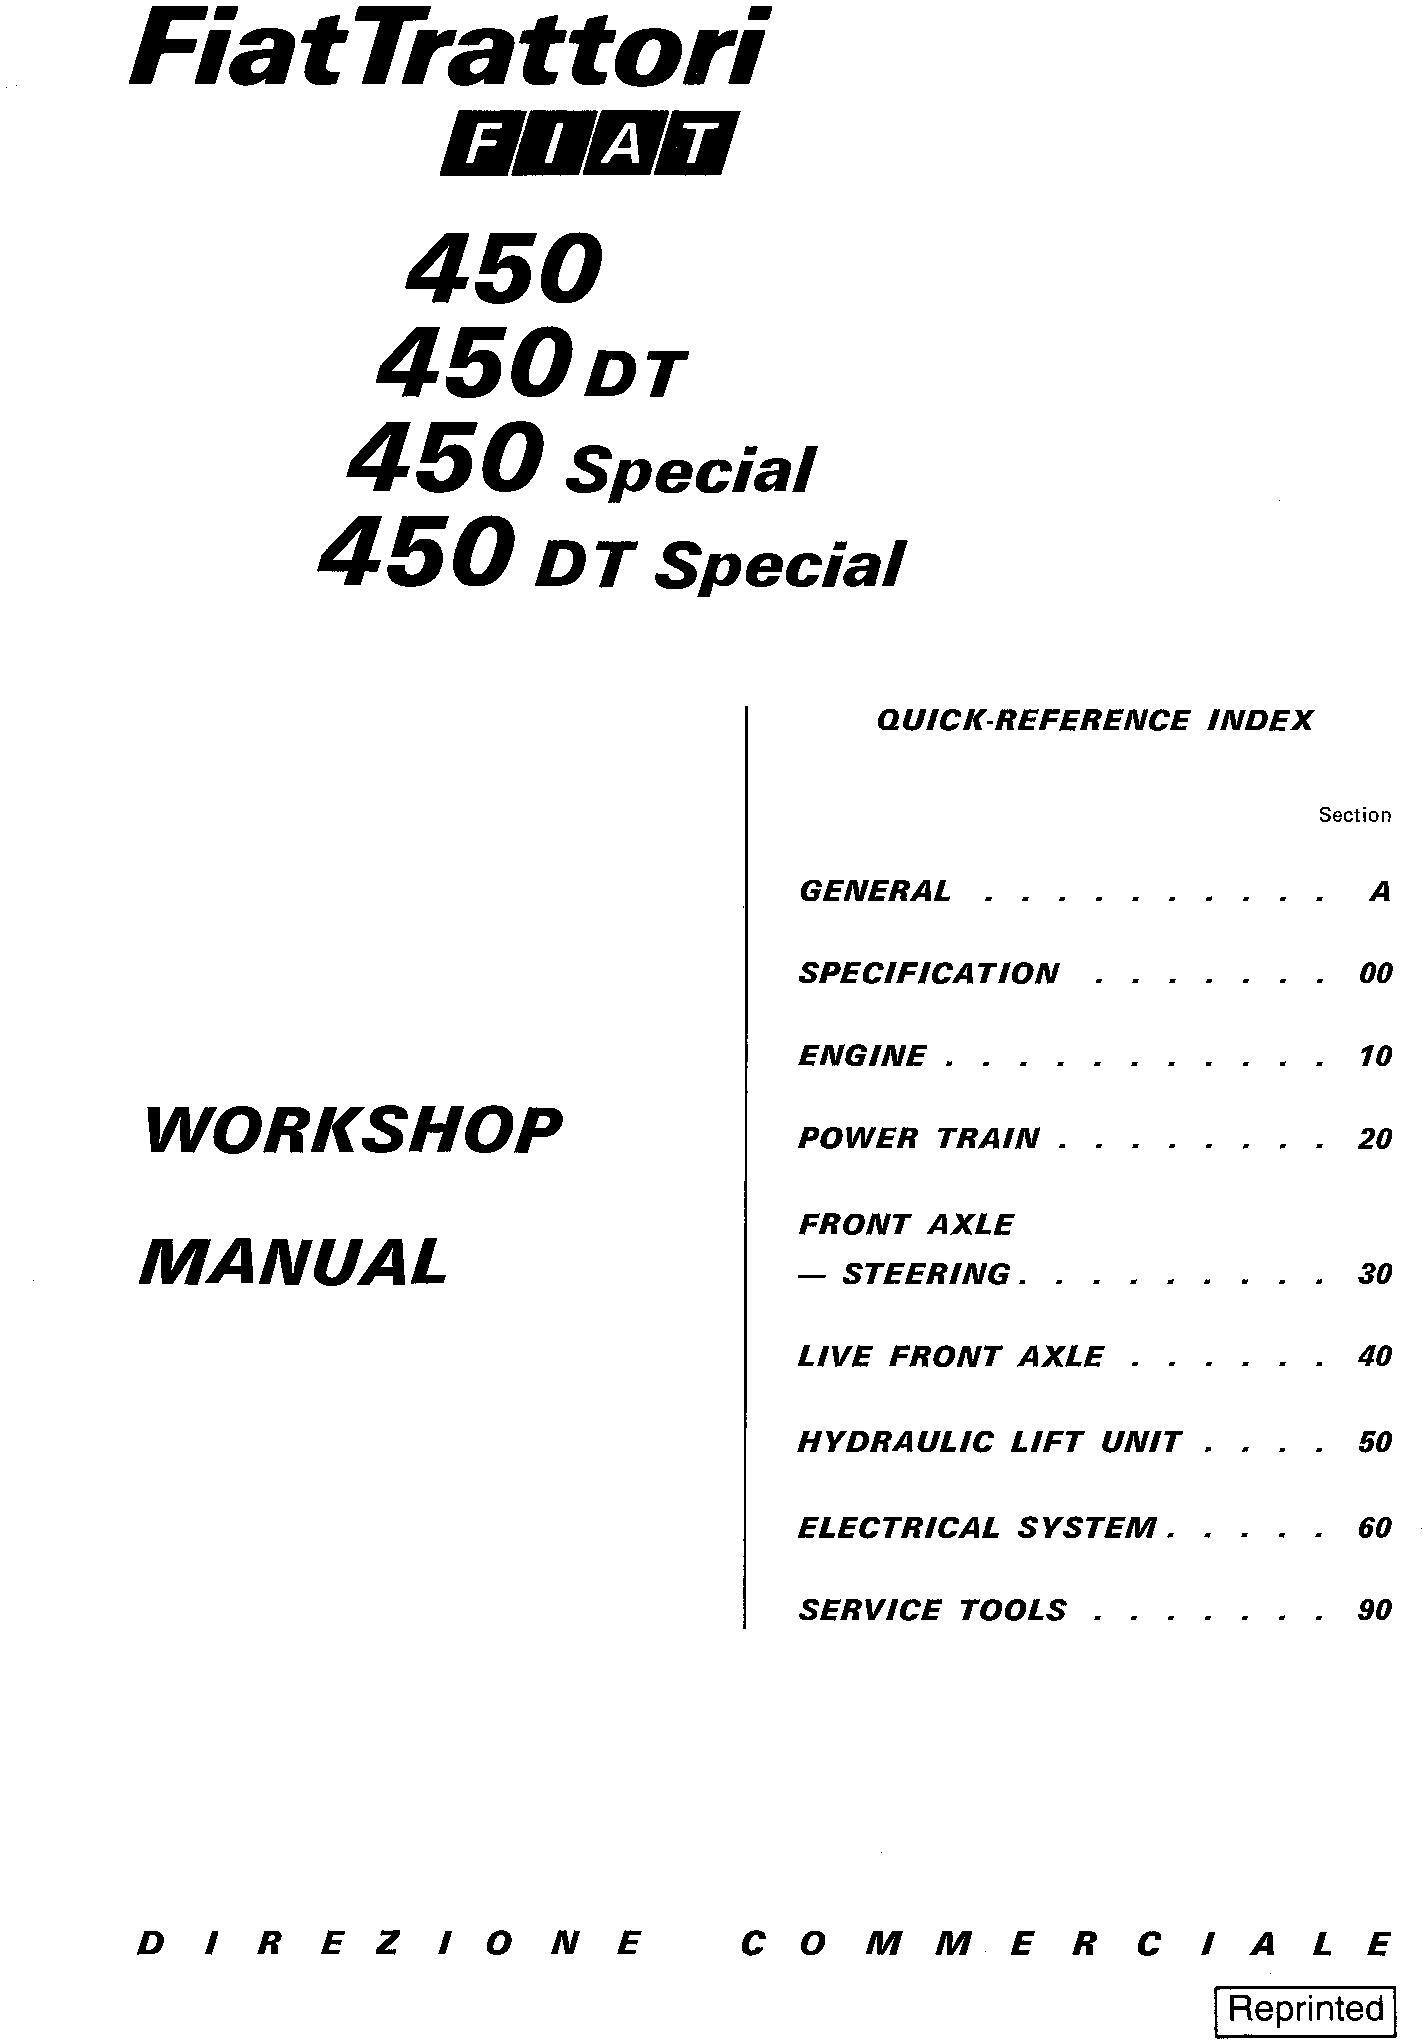 Fiat 450, 450S, 450 DT, 450 DTS Tractor Service Manual